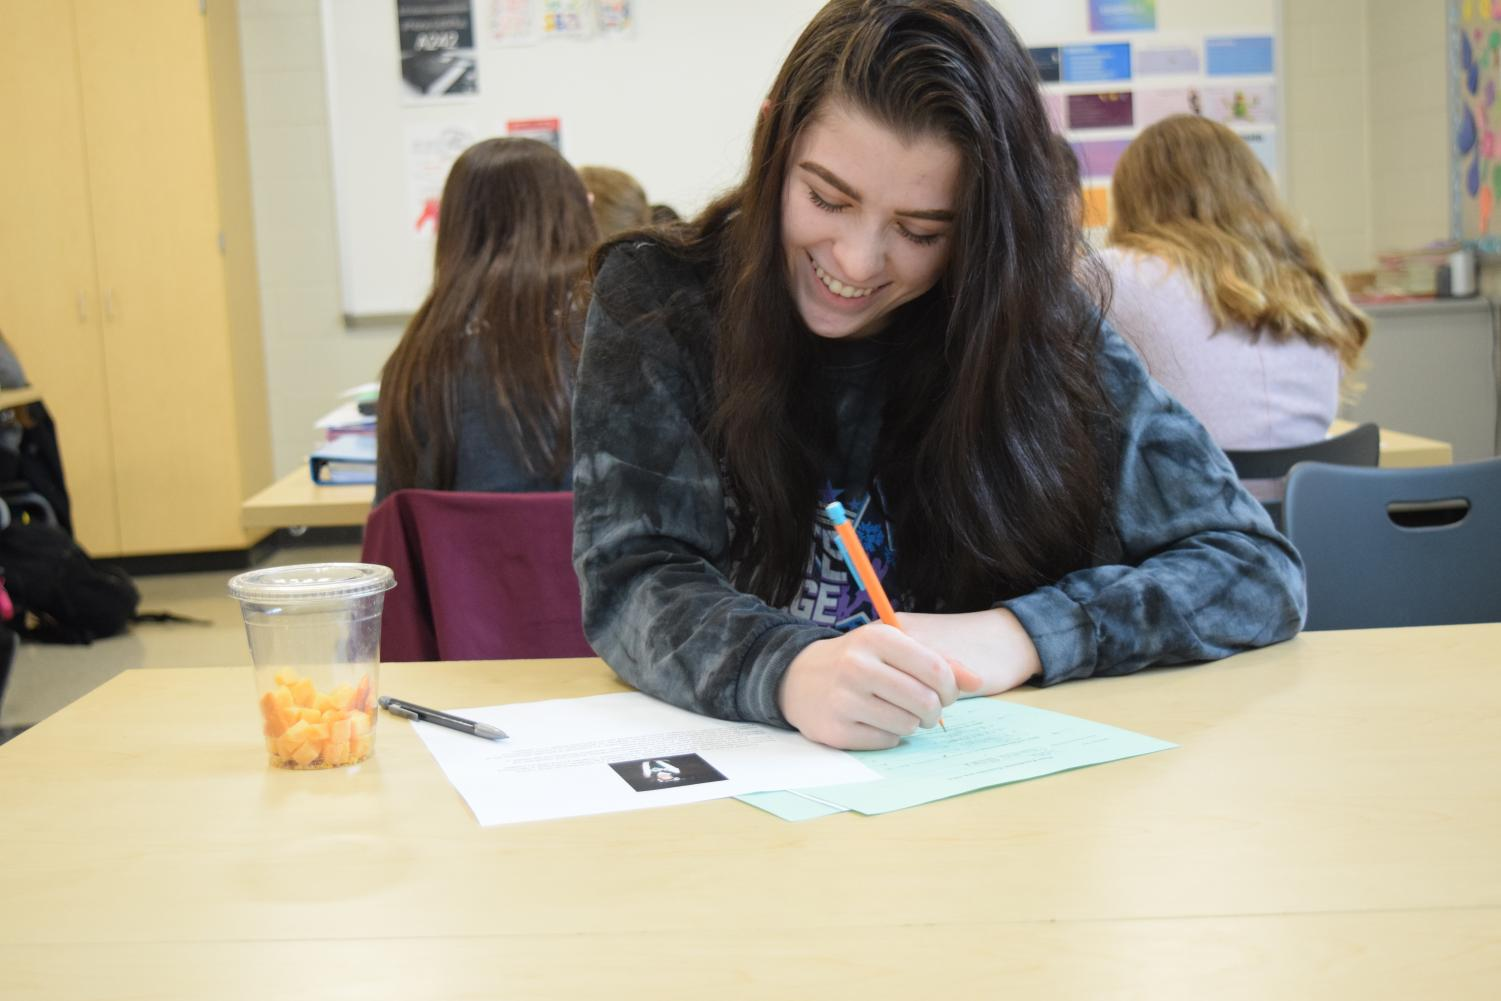 """Paige Miller, State High freshman, works on a peer review project for her Spanish class. Written projects and essays are often used in world languages to promote comfortability and familiarity with students' languages. """"In Spanish, we get to learn about another culture while having a great time with our teacher, Señor Gallo,"""